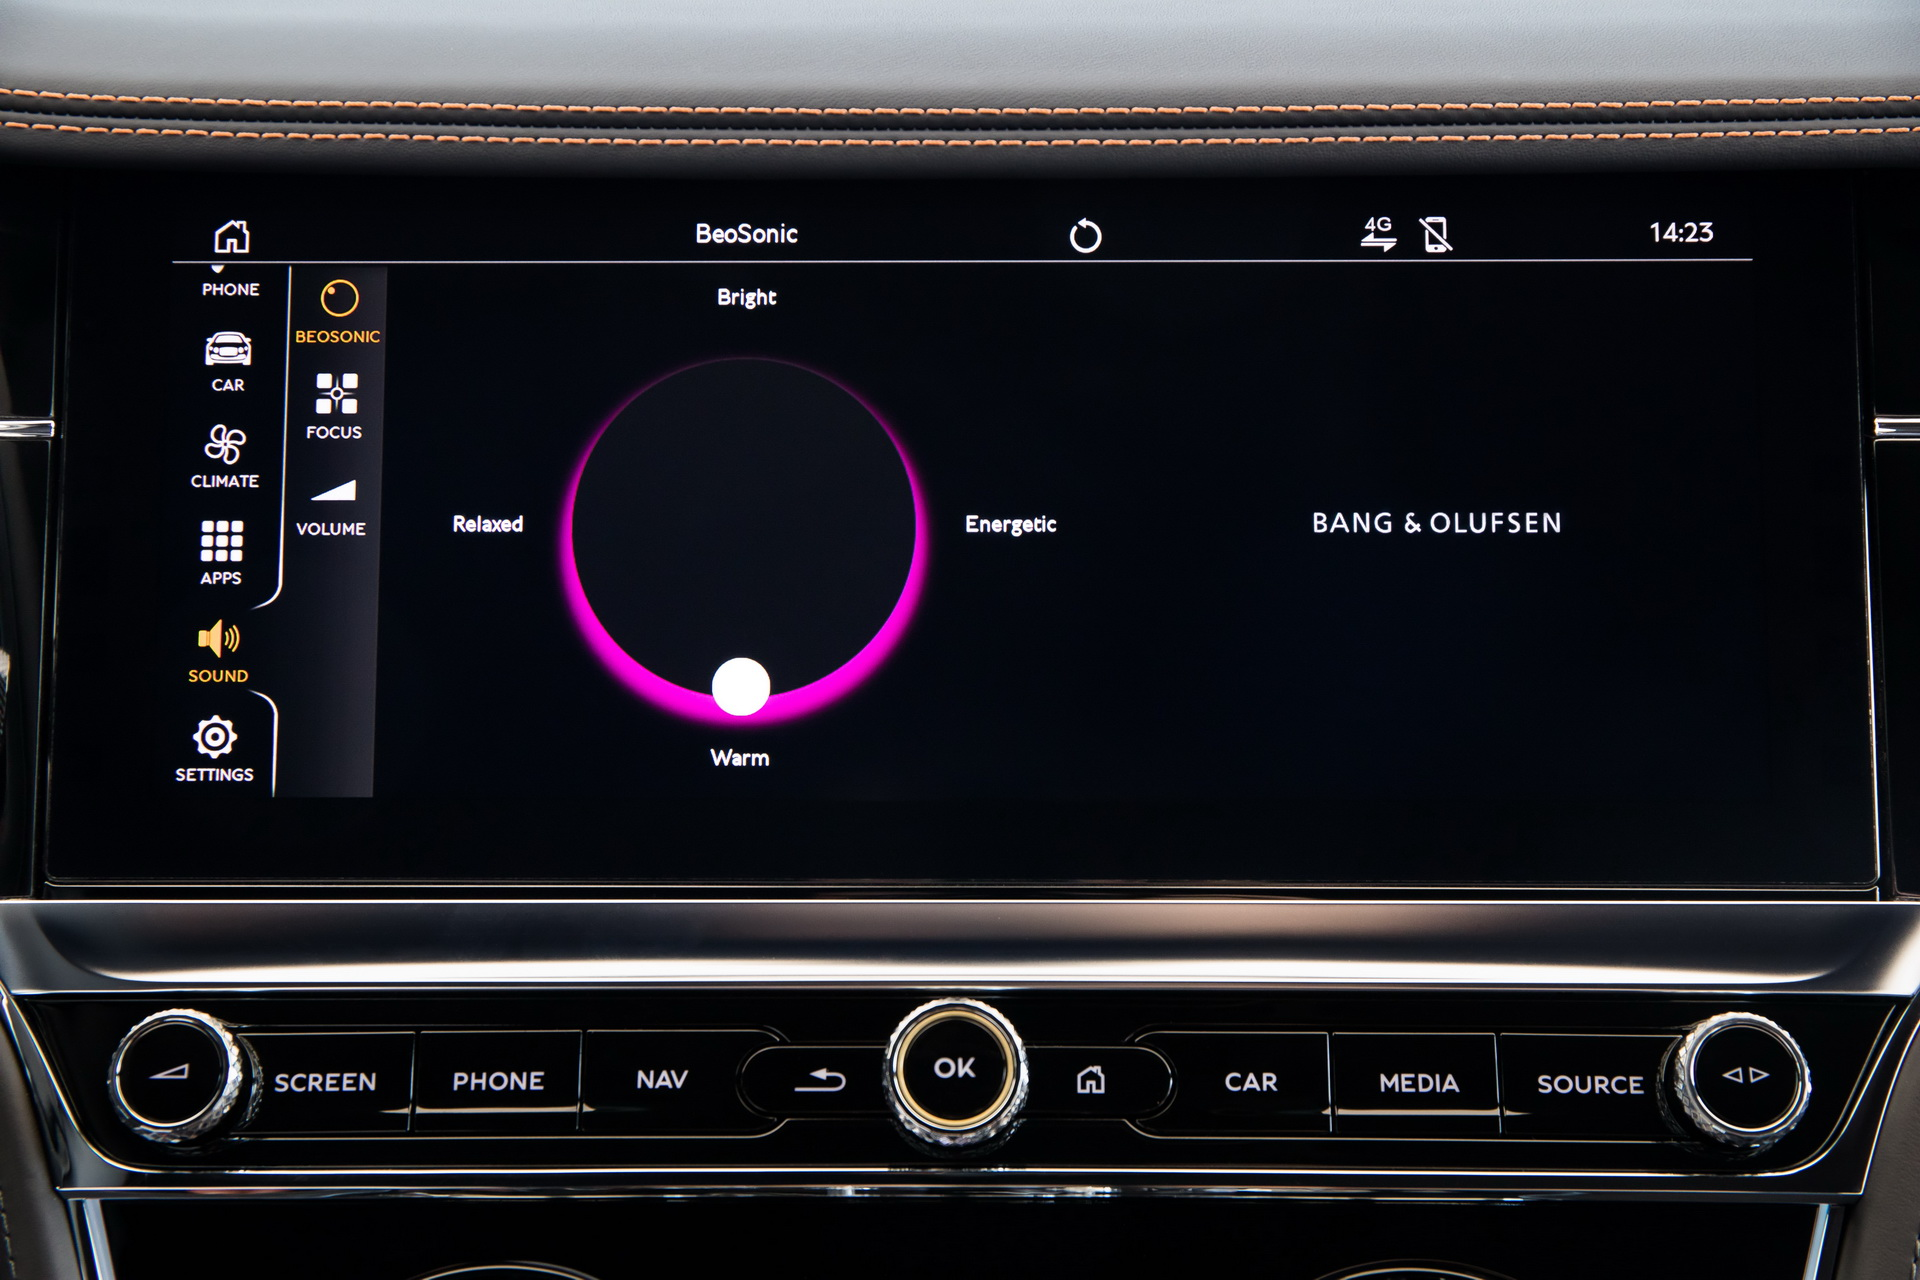 Bentley_Continental_GT_Bang_&_Olufsen_11